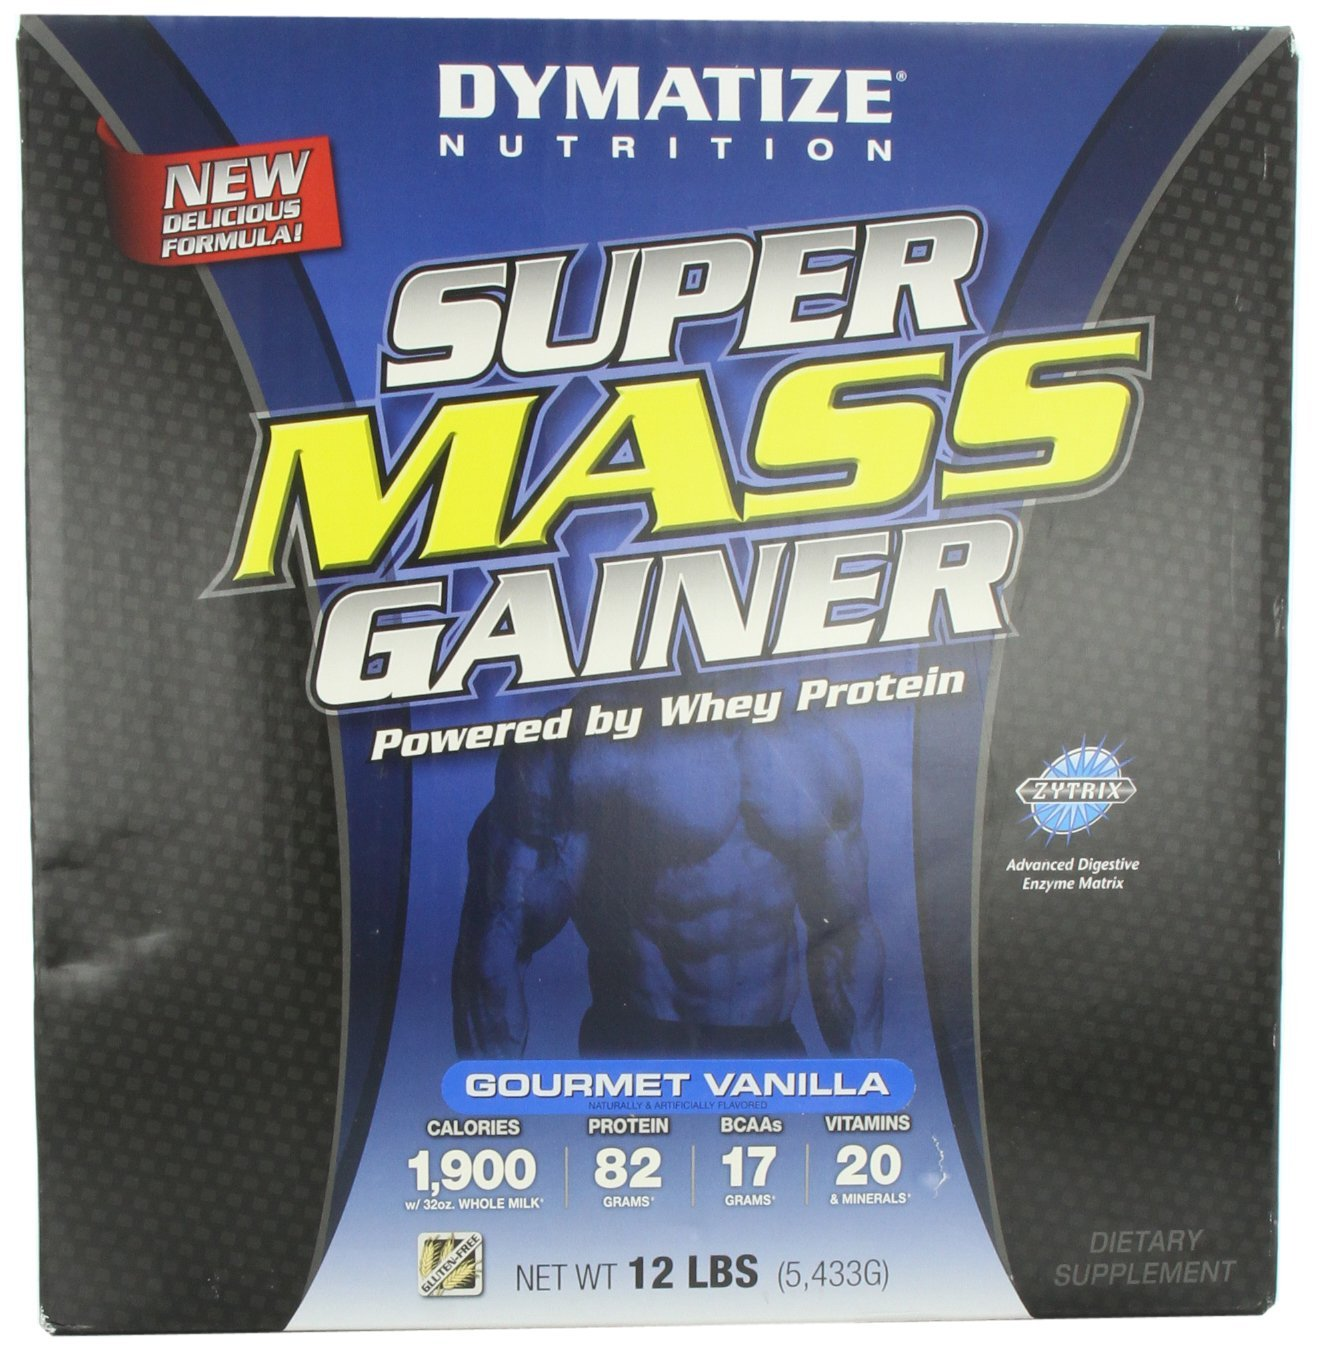 Review Dymatize Nutrition Super Mass Gainer Bodybuilder Science 2 Lbs